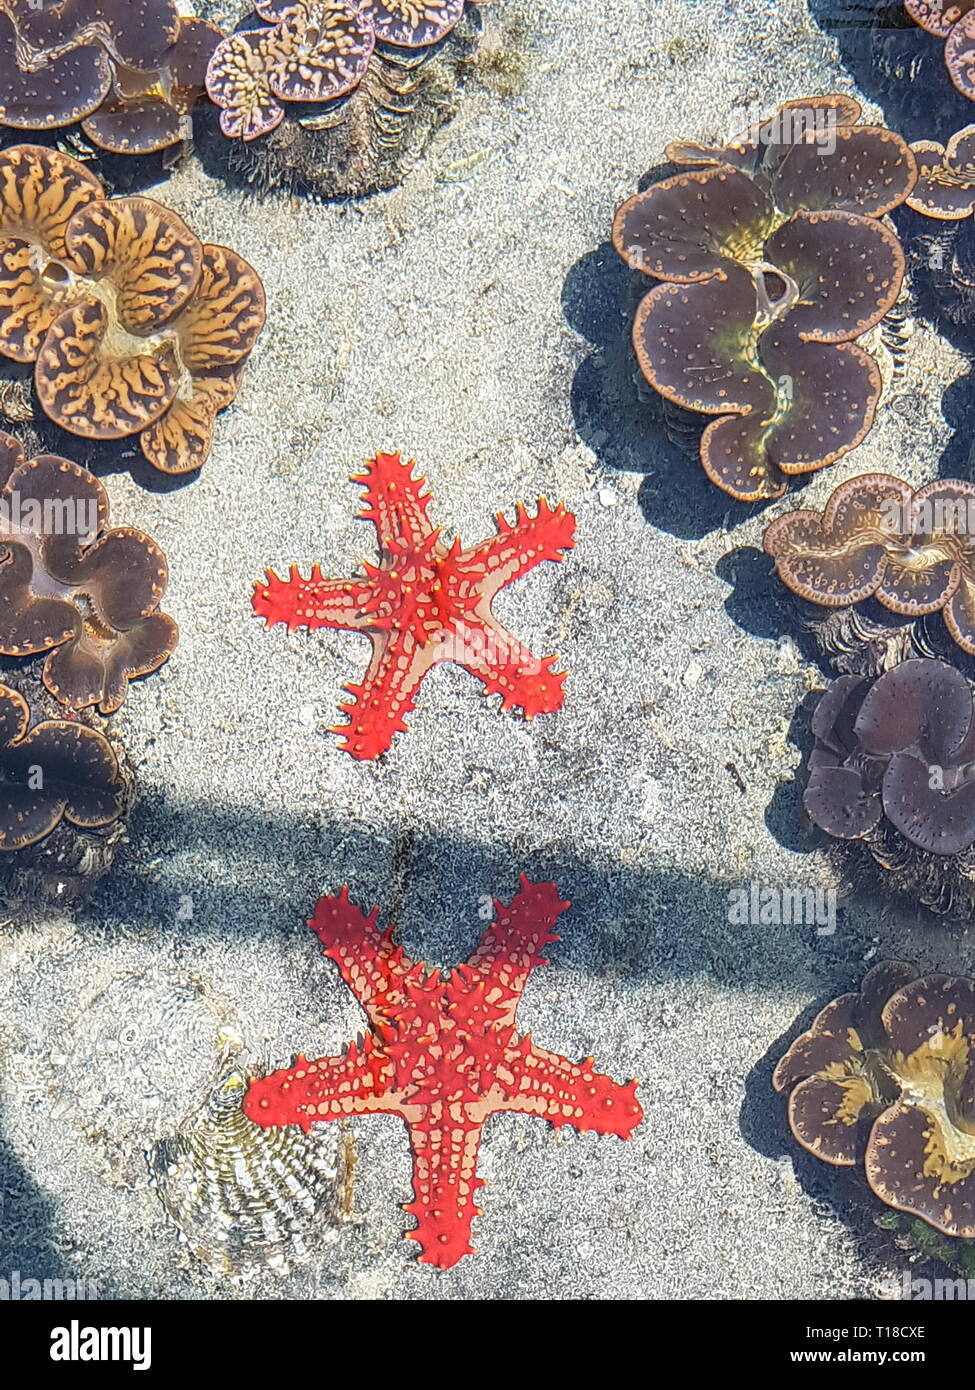 Two starfish next to giant clams on the Seychelles - Stock Image